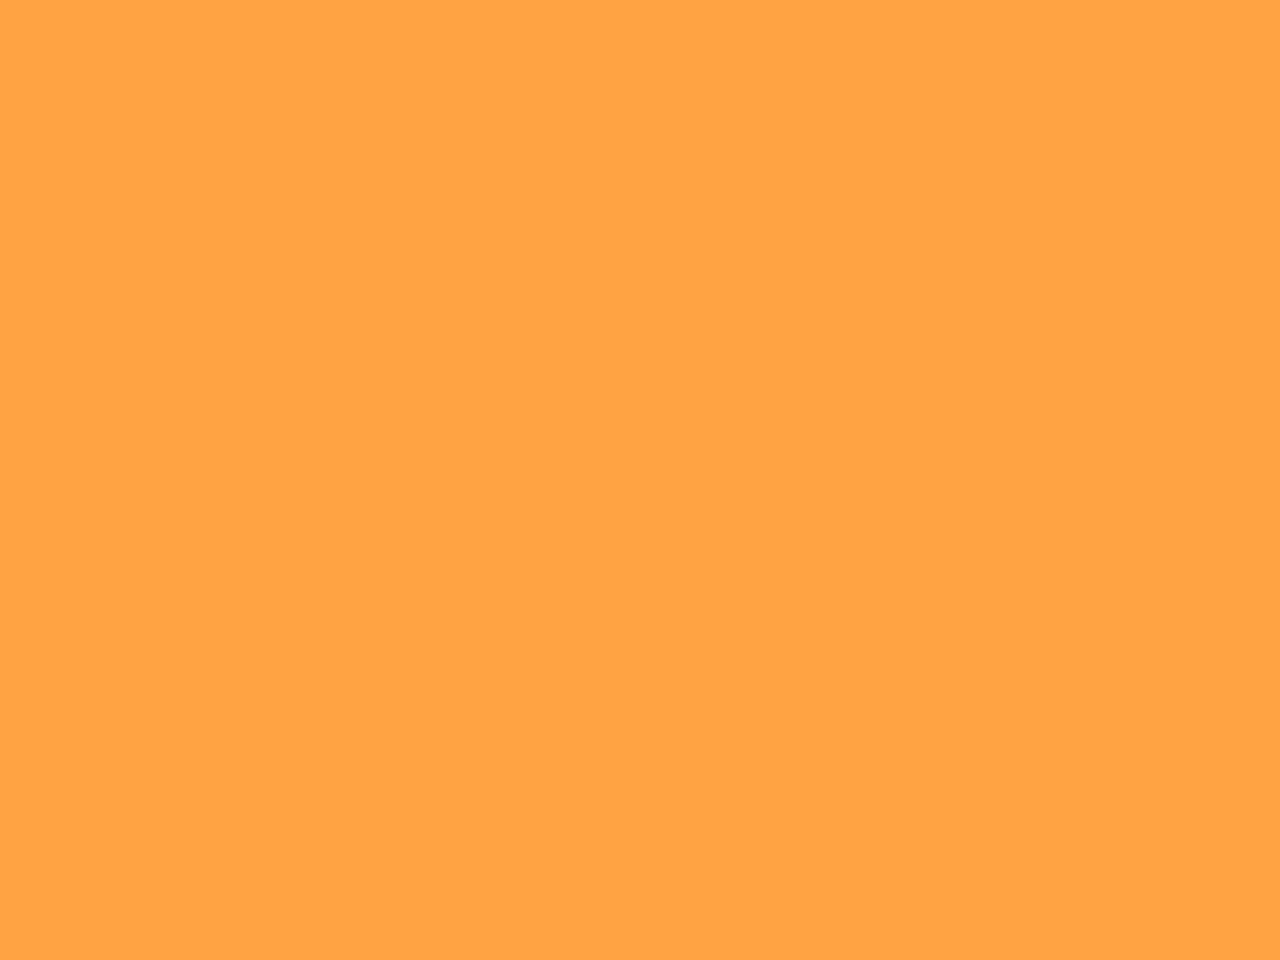 1280x960 Neon Carrot Solid Color Background